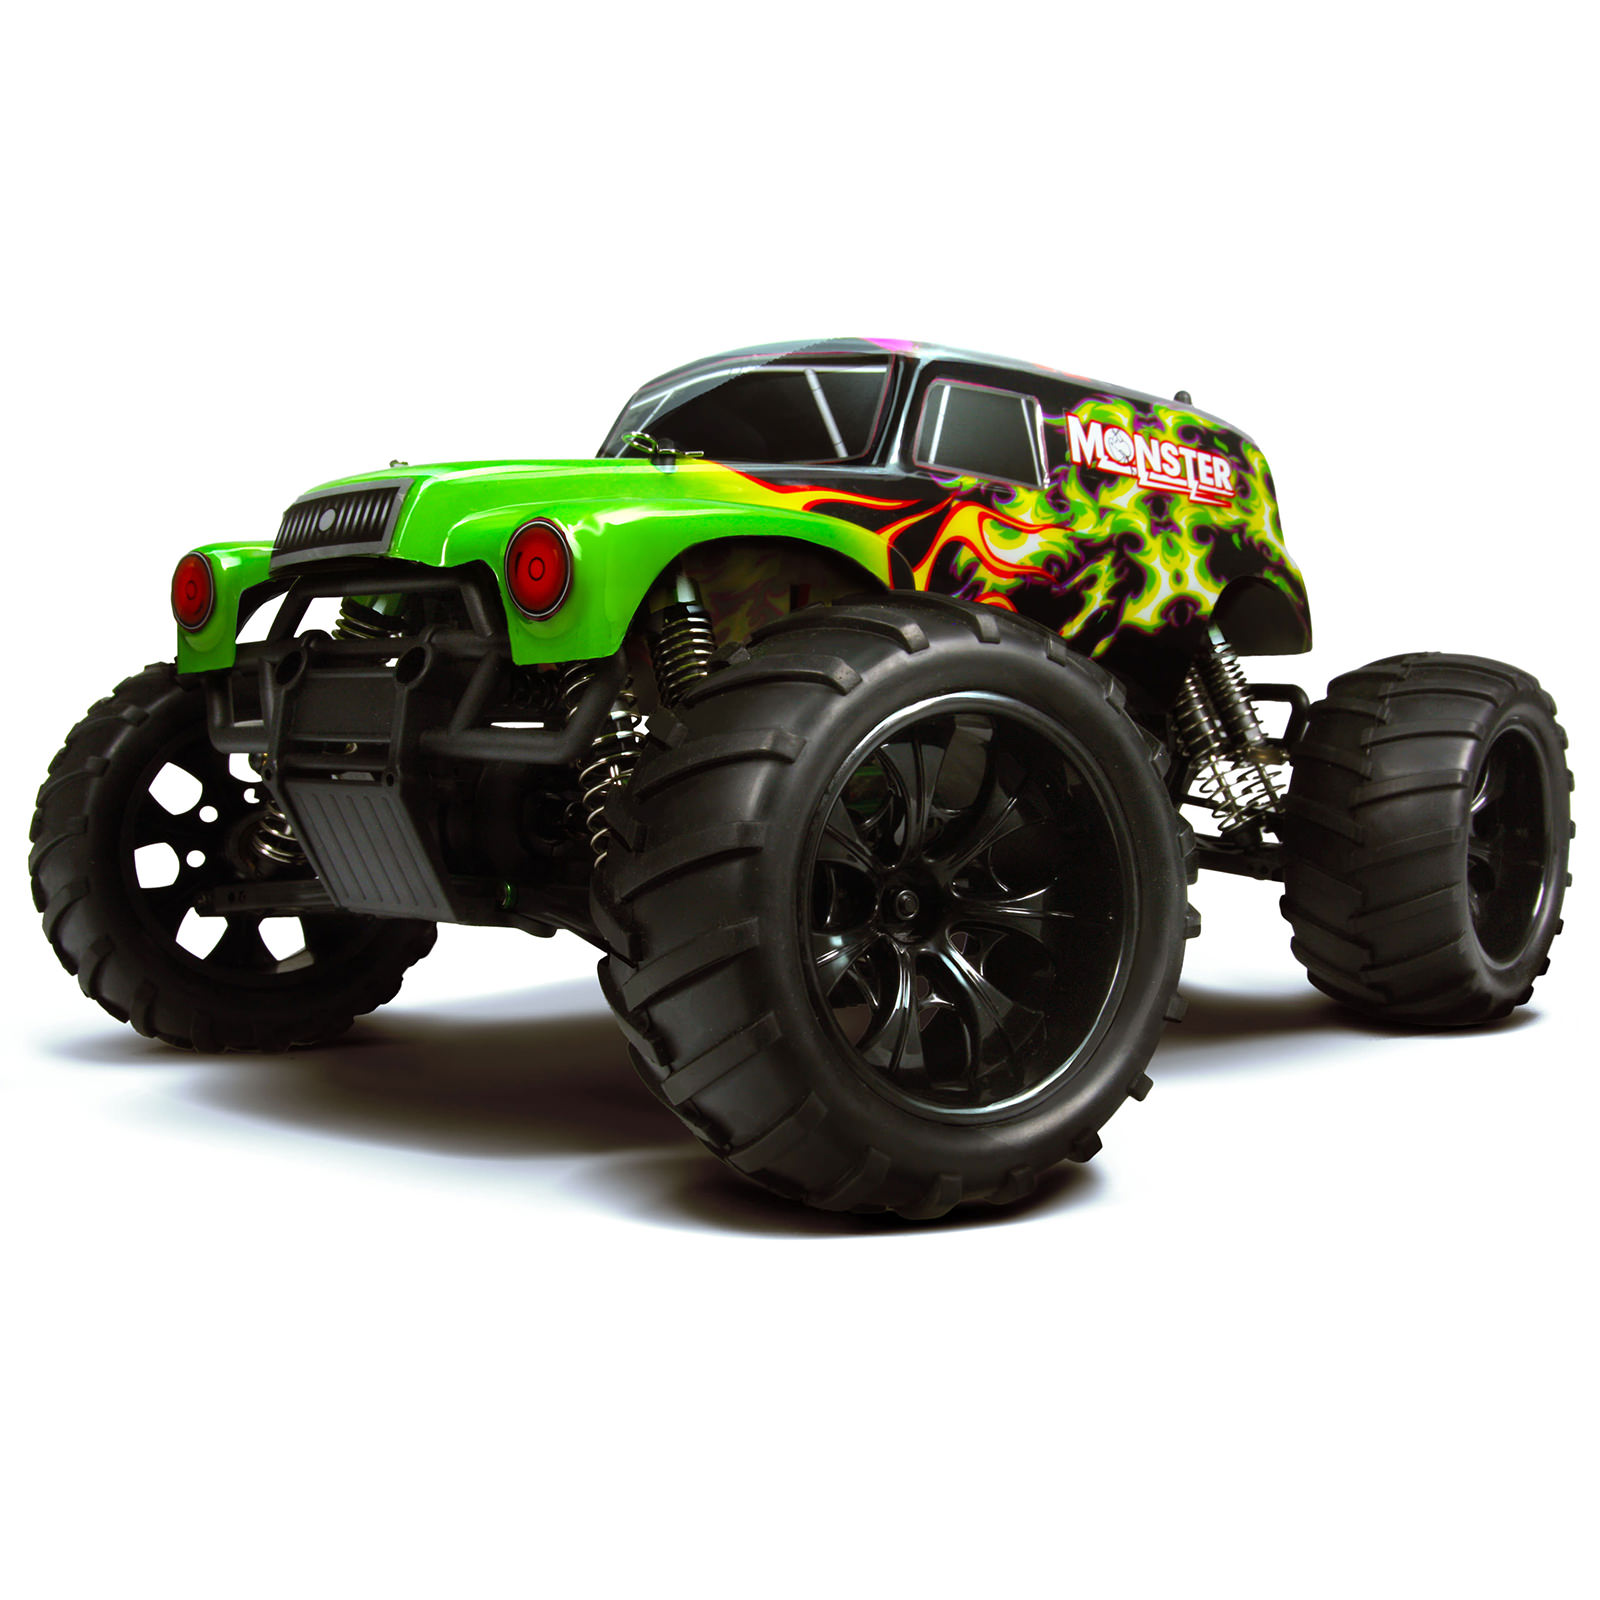 Hsp Monster Truck Special Edition 94111 Rc Truck At Hobby